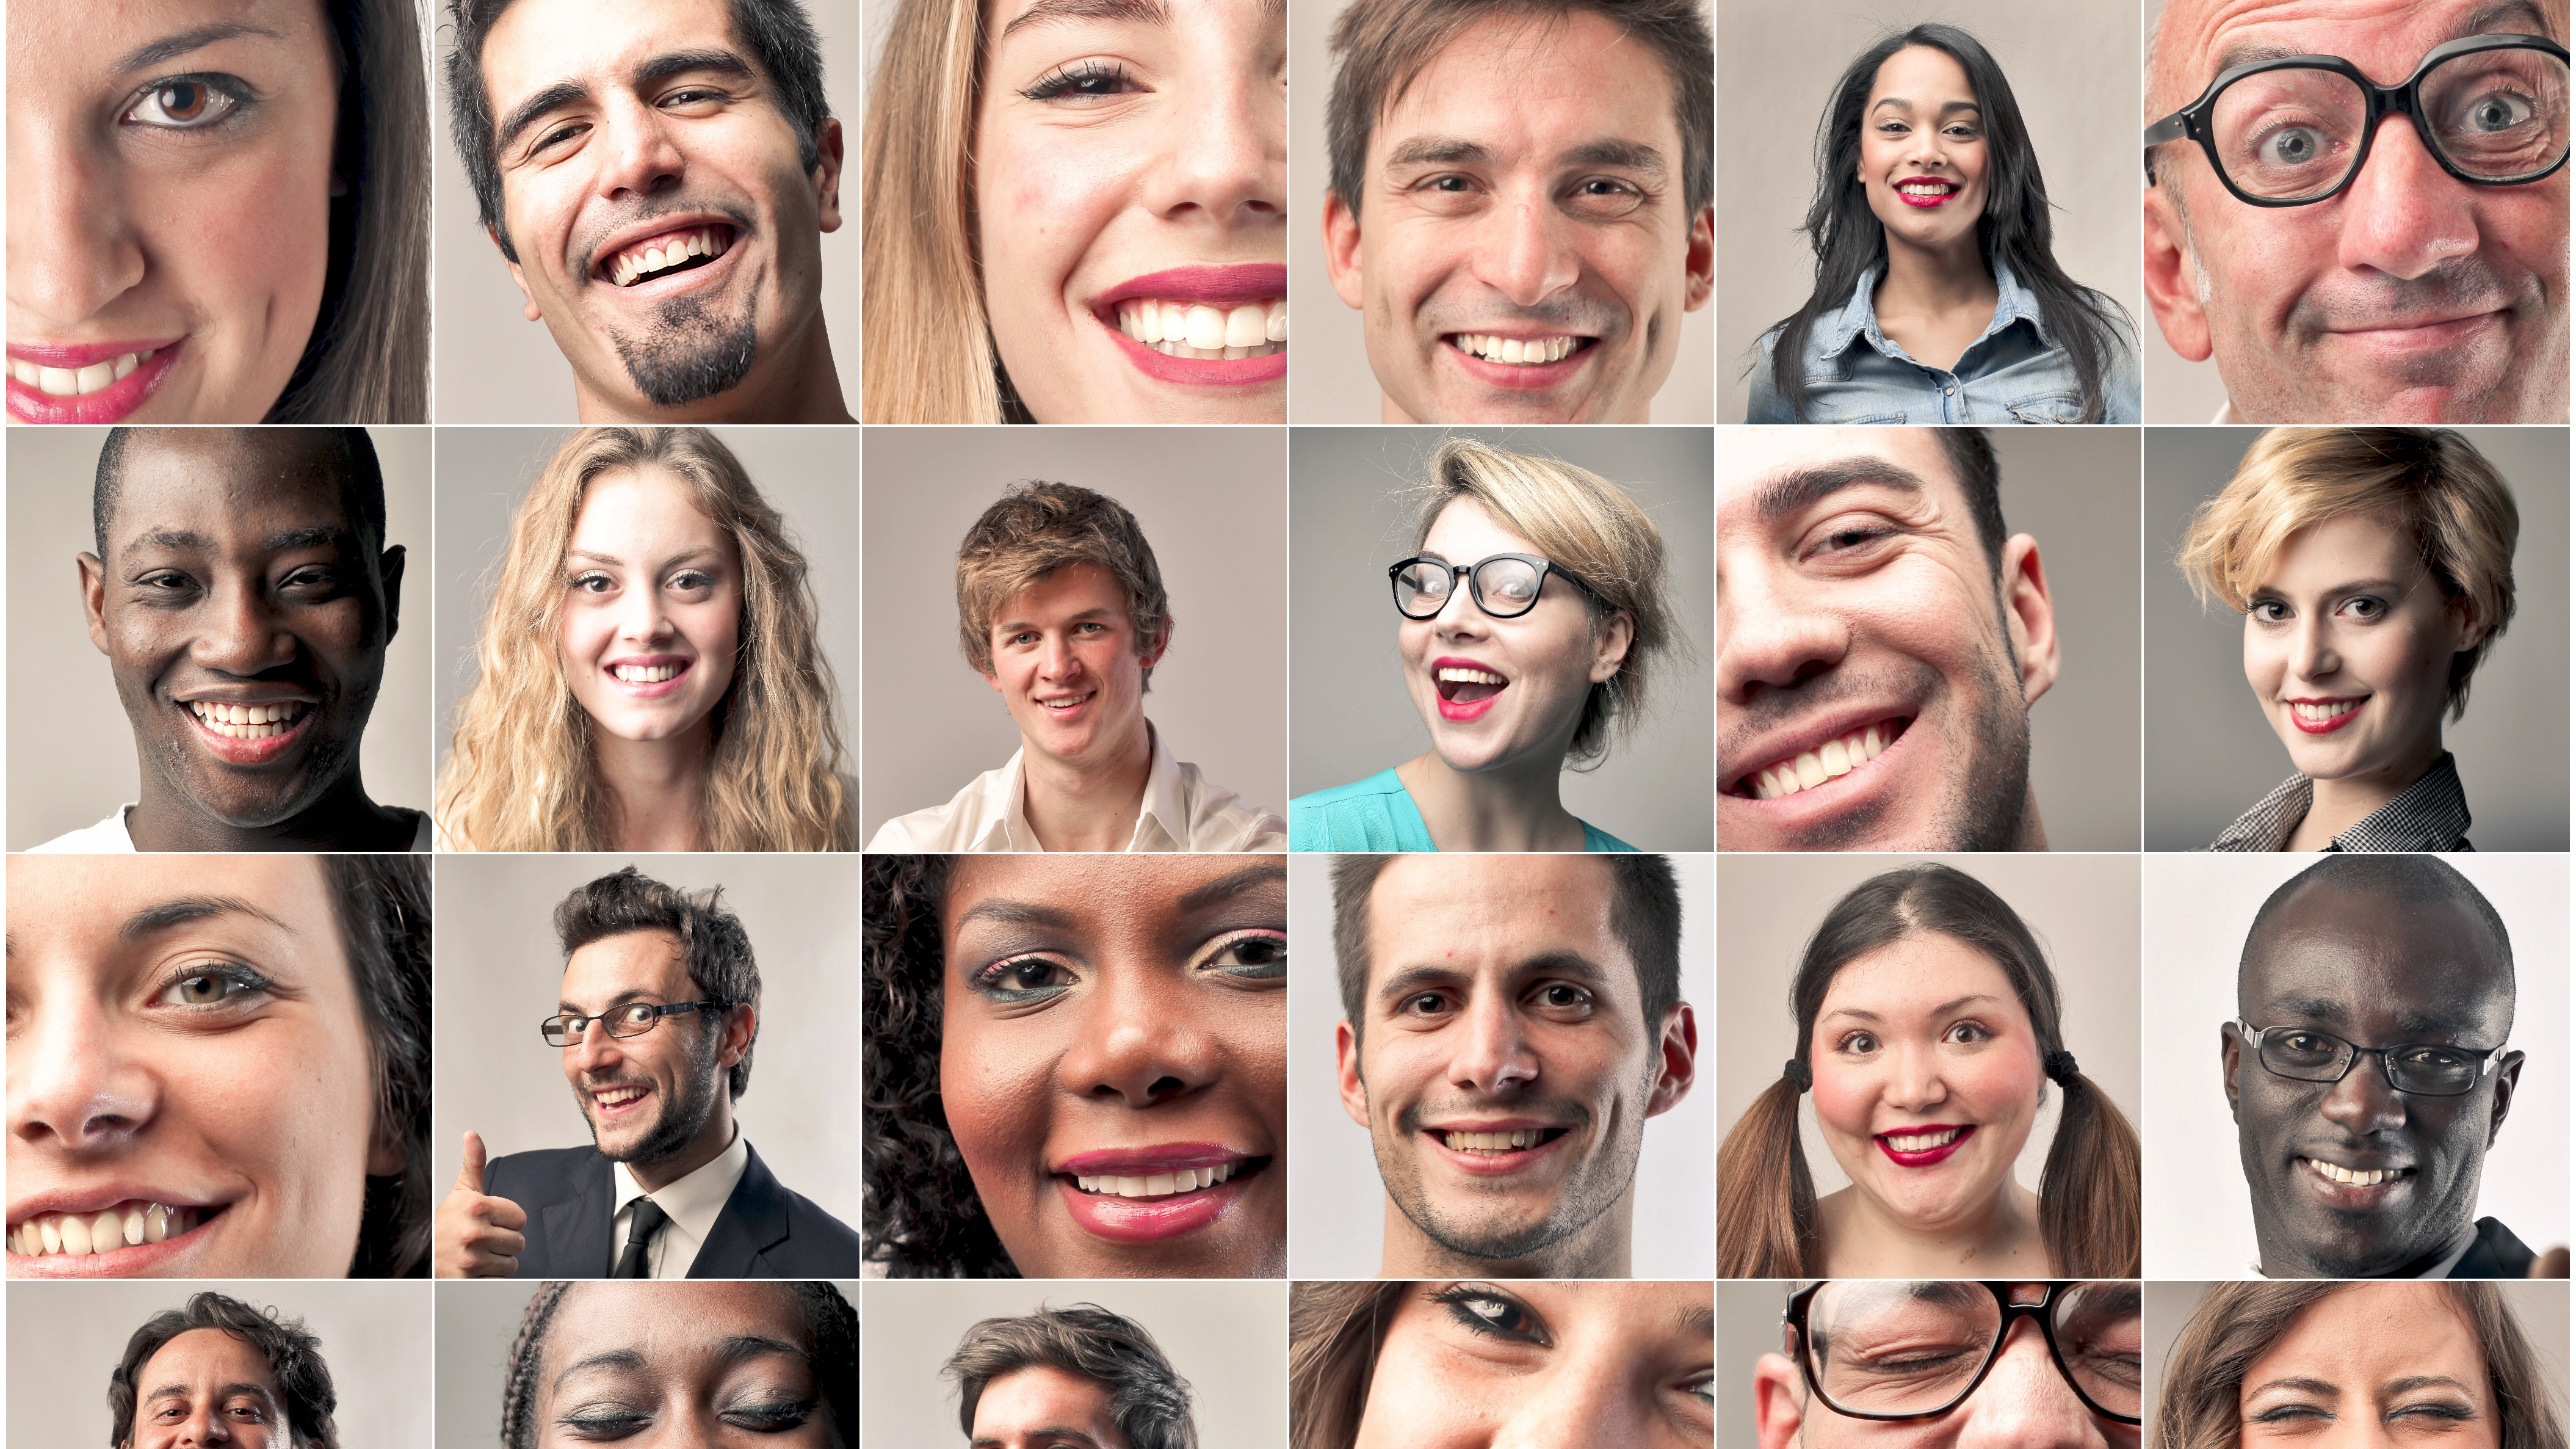 Facial expressiveness in cultures have thought